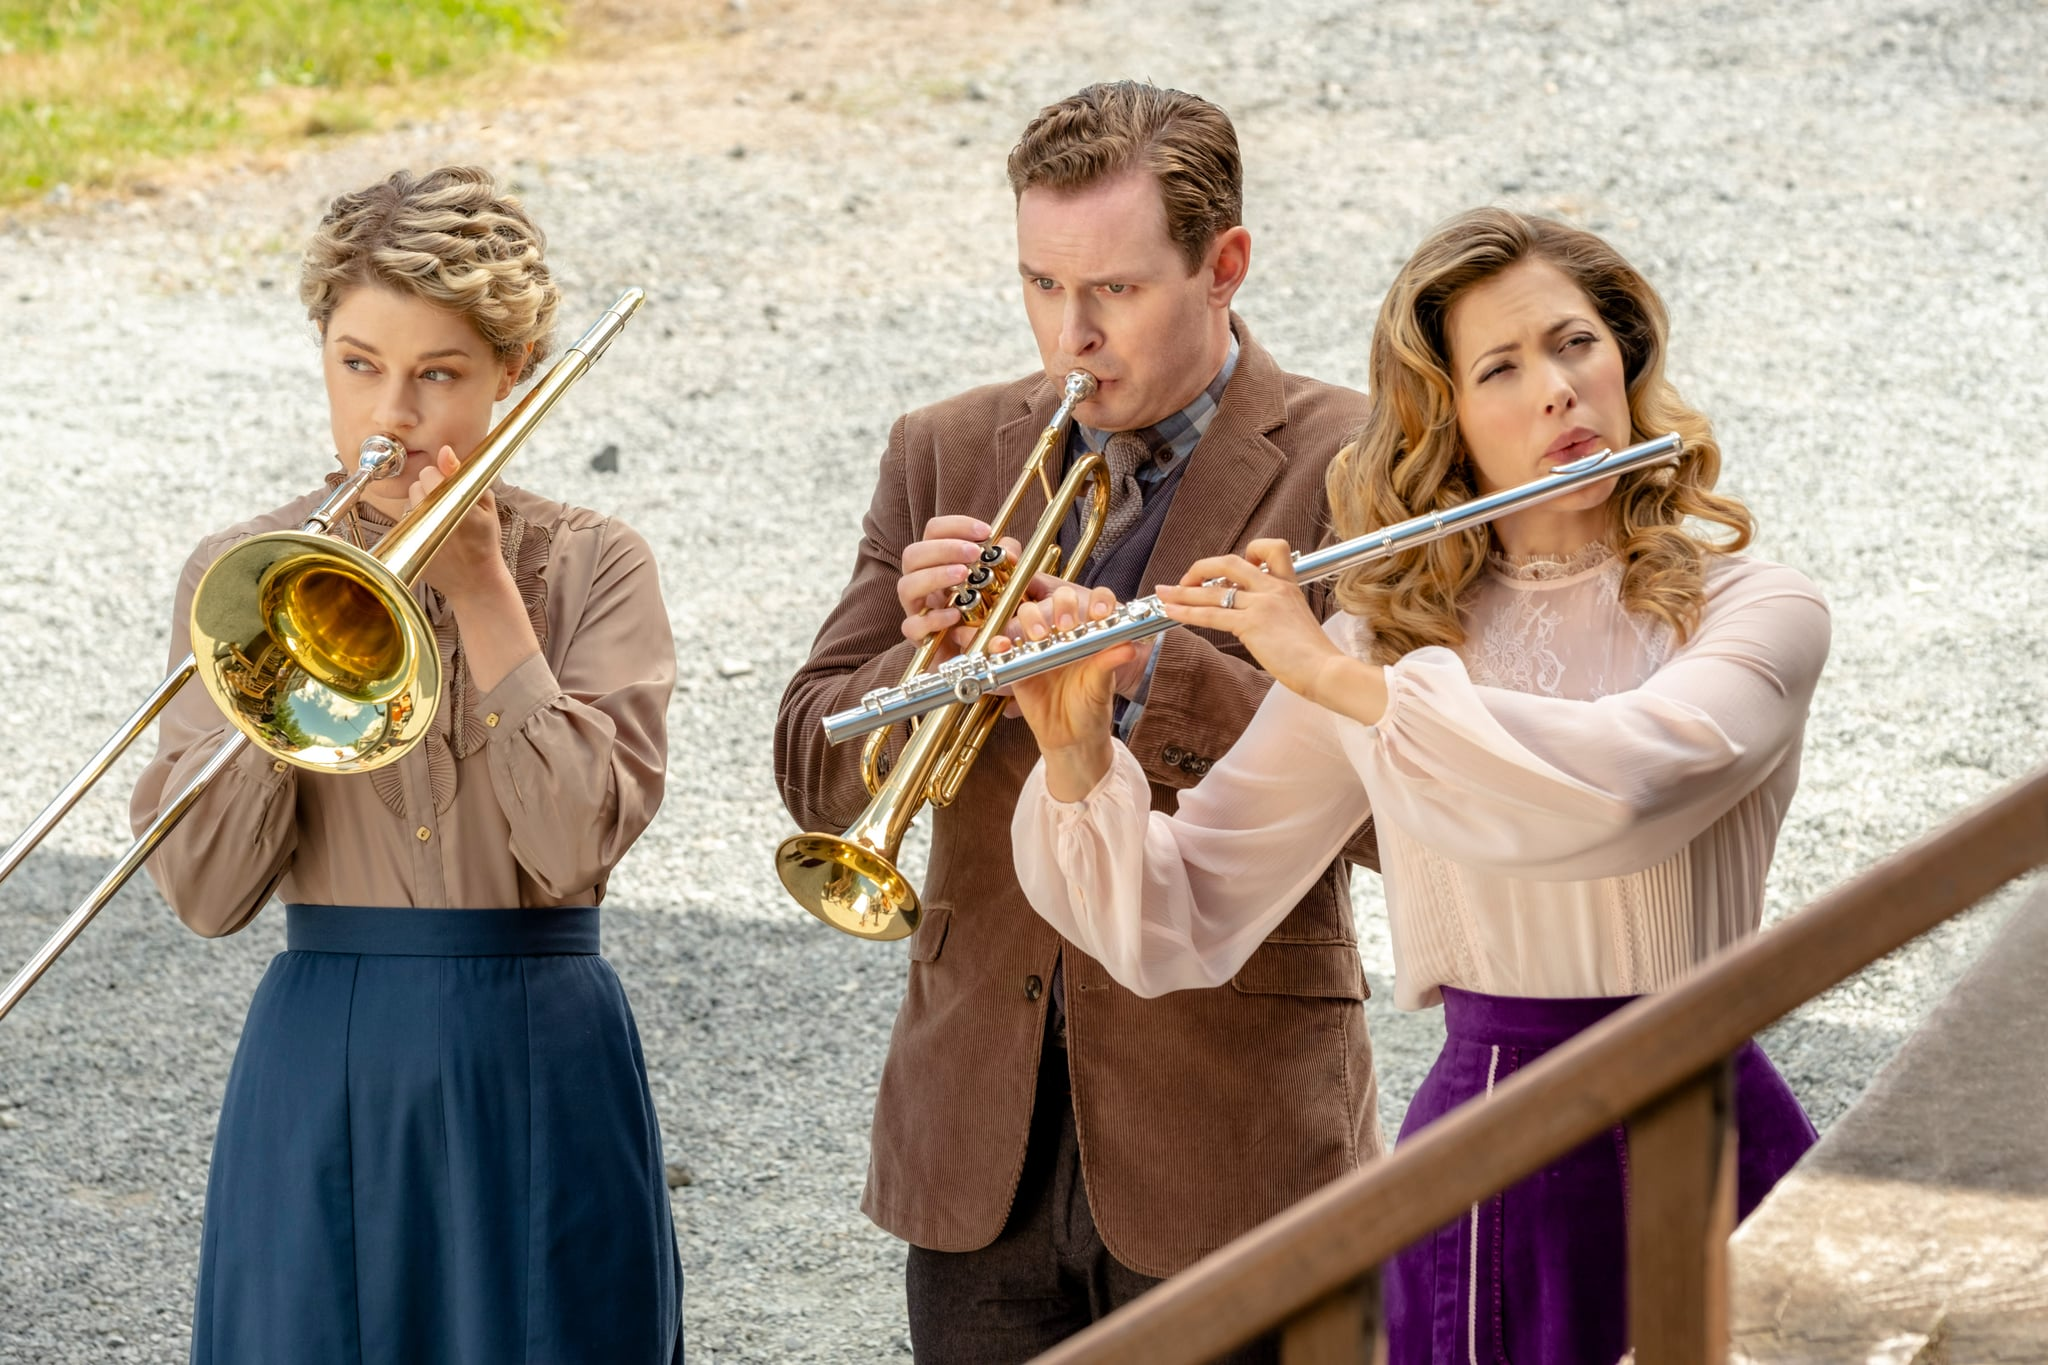 WHEN CALLS THE HEART, Ben Rosenbaum (centre), Pascale Hutton (right), 'Phone Rings and Heartstrings' (Season 6, ep. 601, aired Feb. 24, 2019). photo: David Dolsen / Hallmark Channel / courtesy Everett Collection